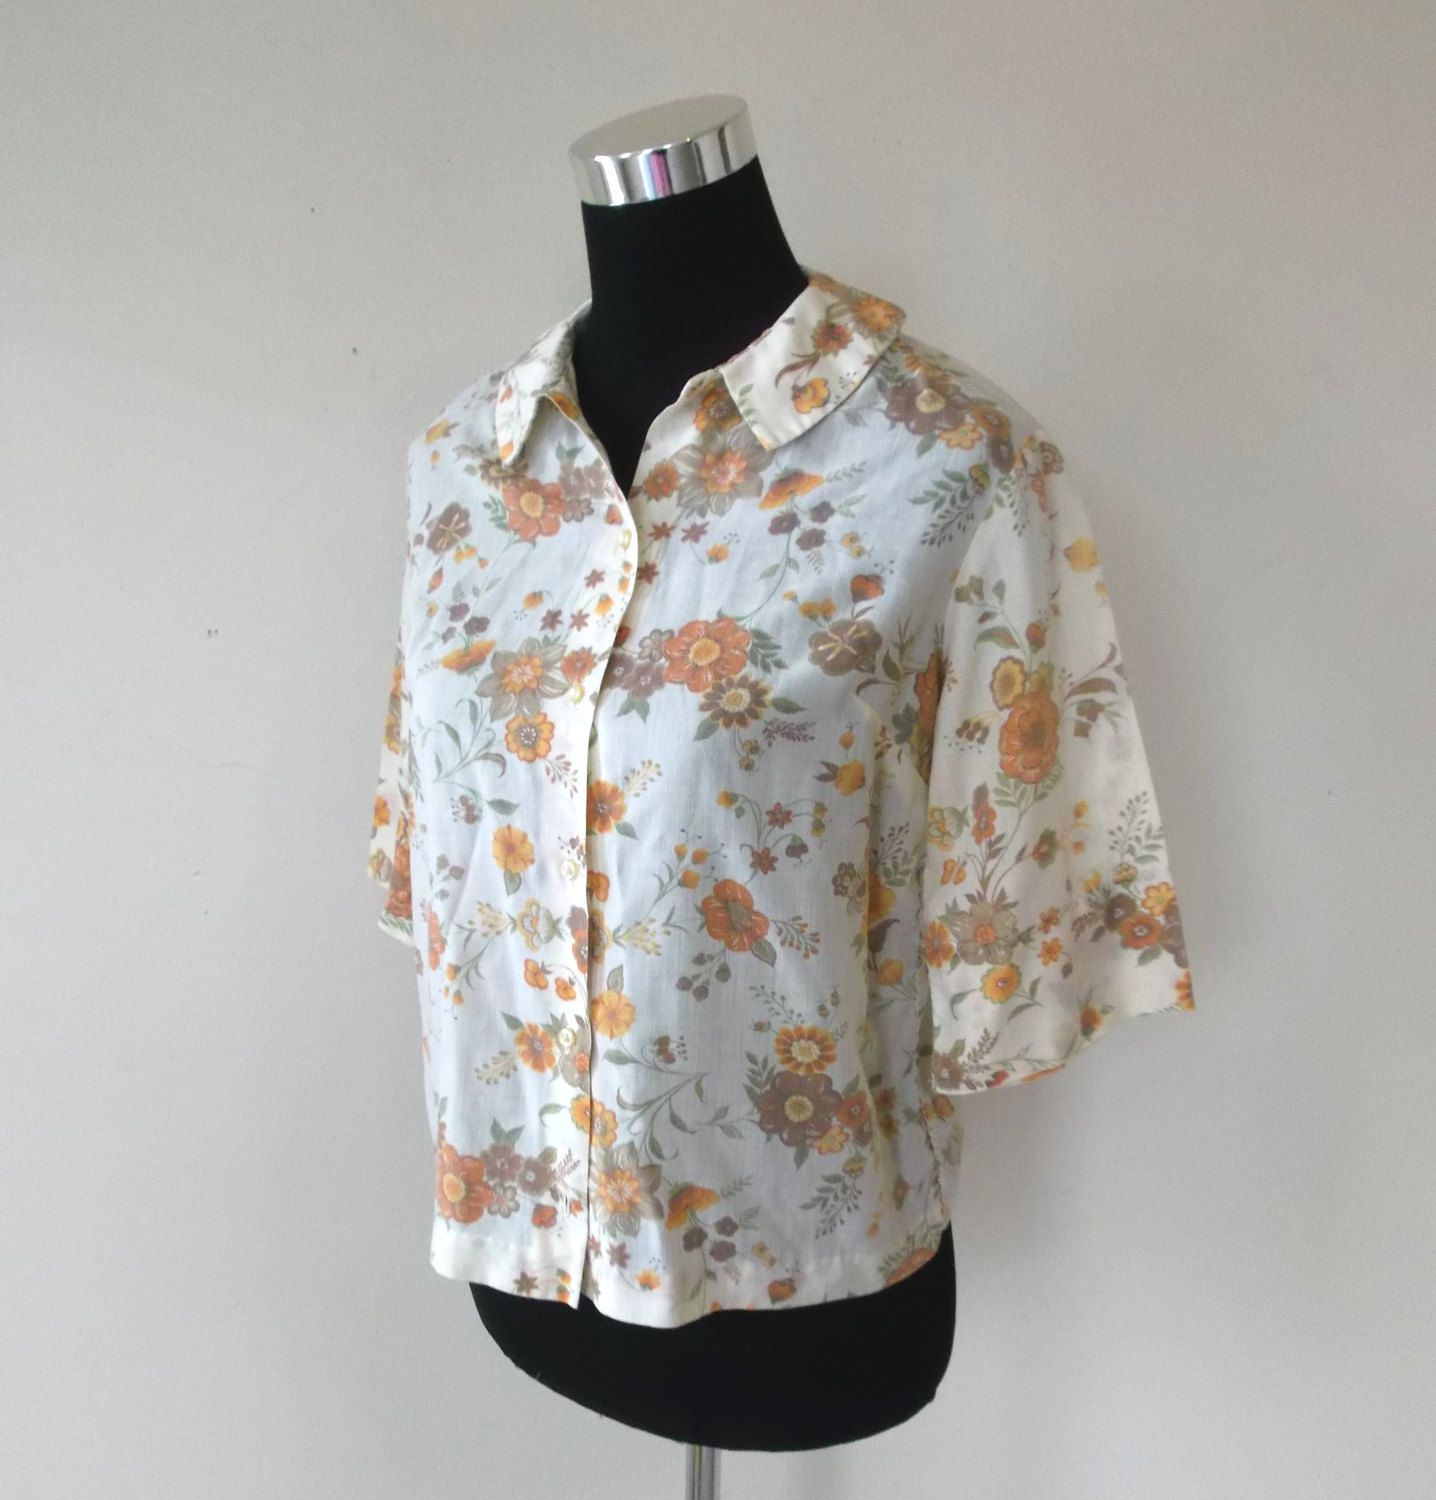 Free Shipping 1960 S Vintage Flower Print Blouse By New Etsy Vintage Flower Prints Flower Print Blouse 1960s Vintage